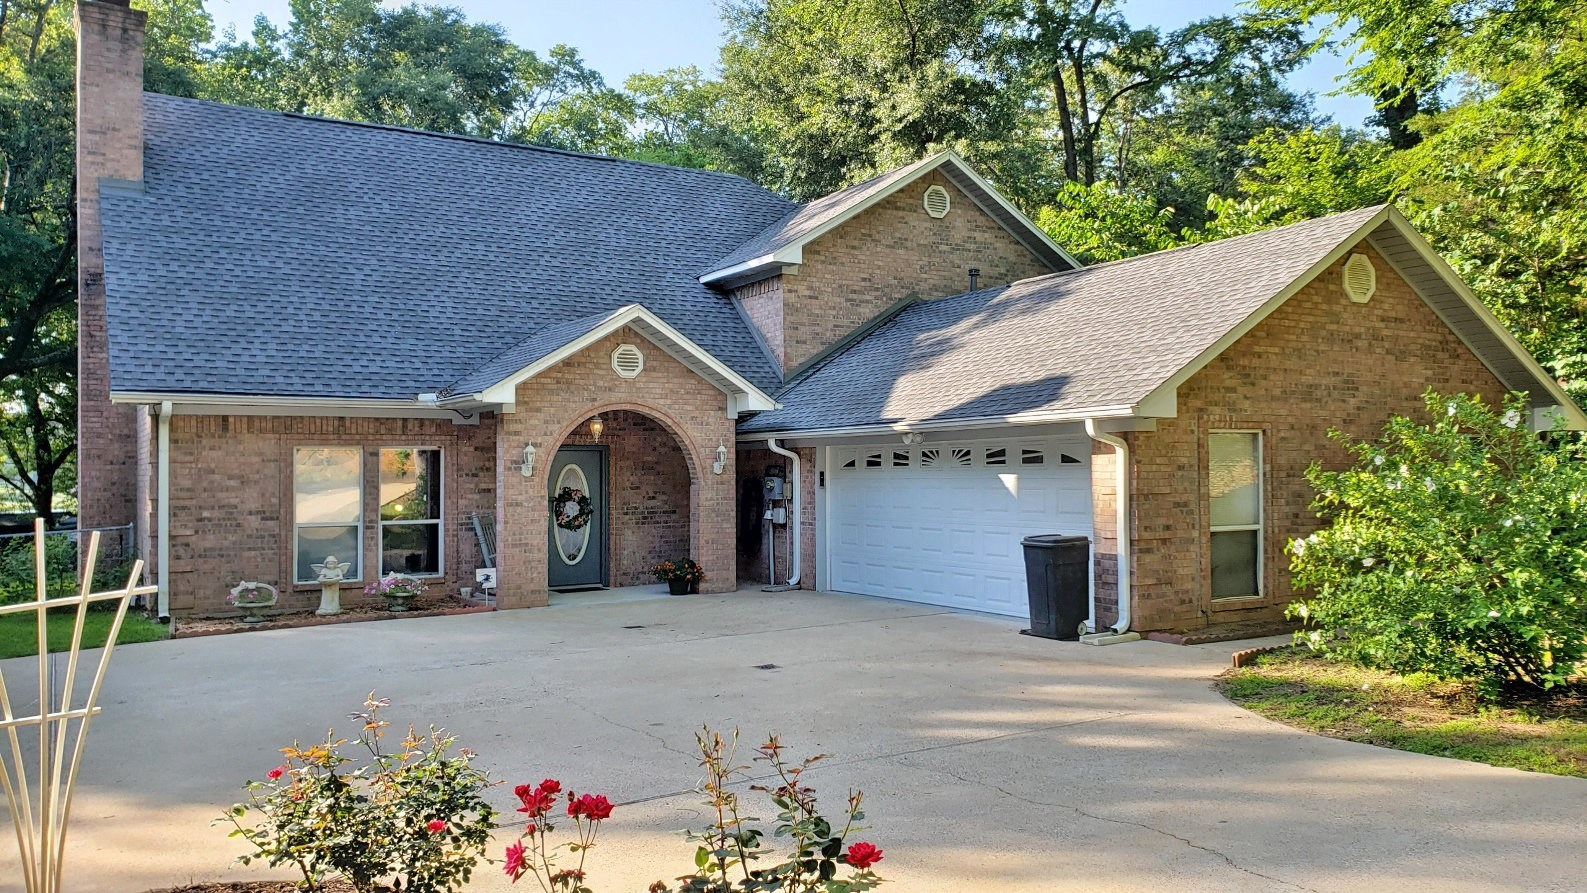 2 STORY WATERFRONT HOME FOR SALE ON LAKE PALESTINE | EAST TX